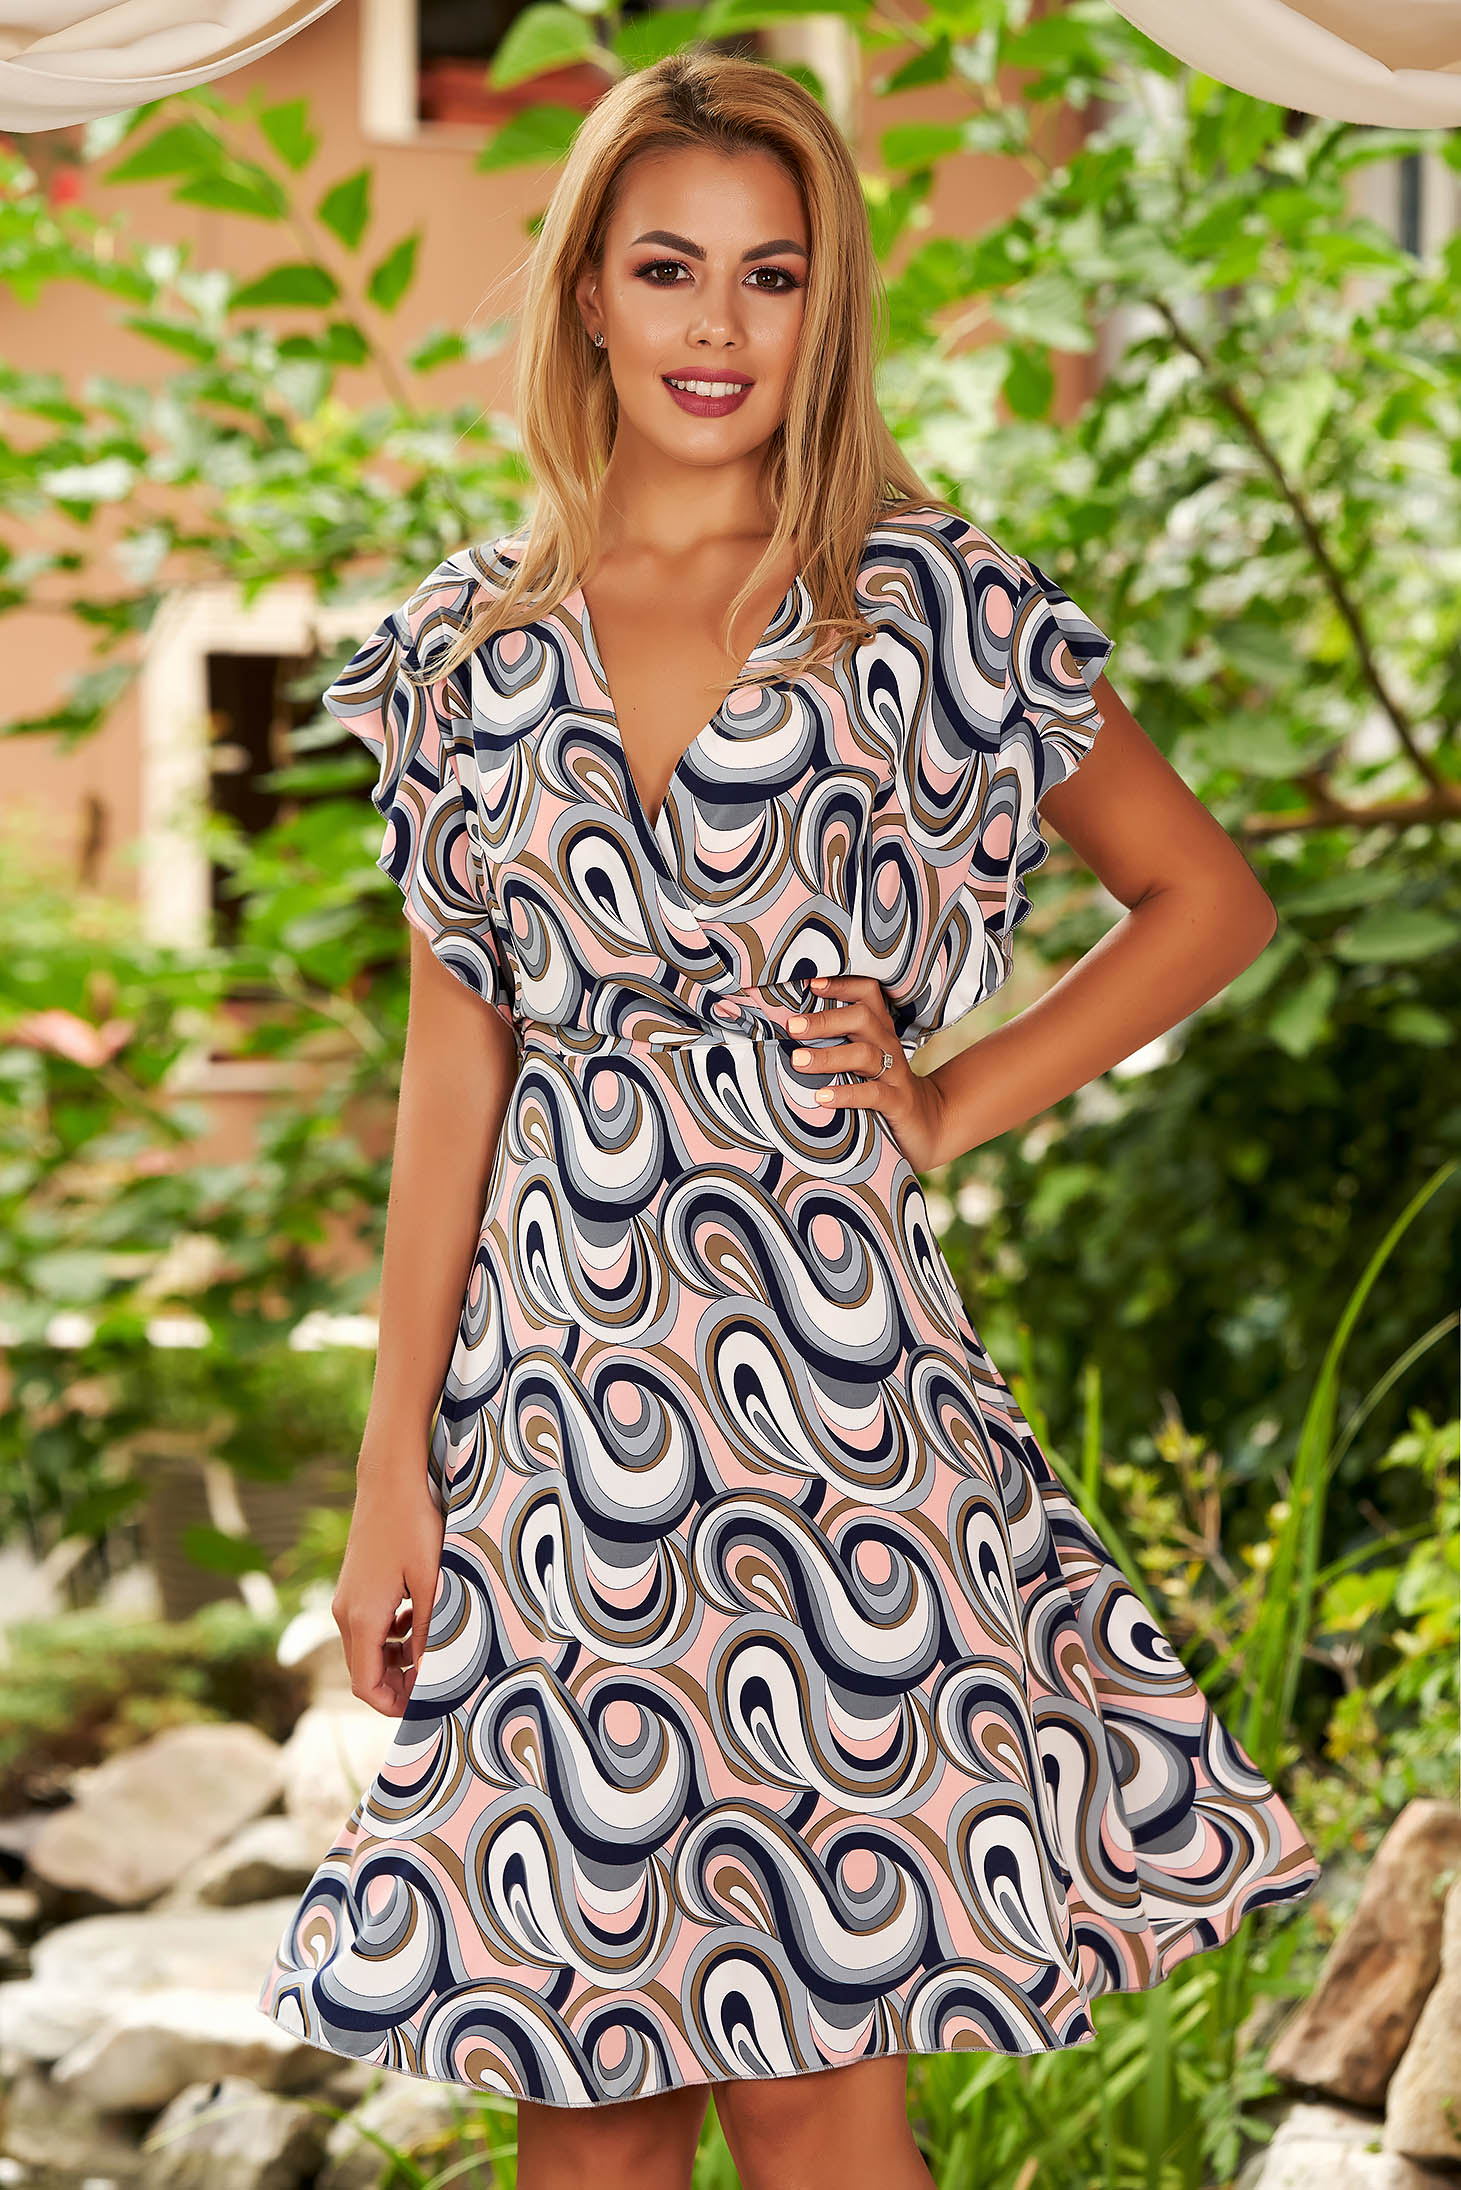 Blue dress short cut daily cloche with graphic details with deep cleavage with butterfly sleeves